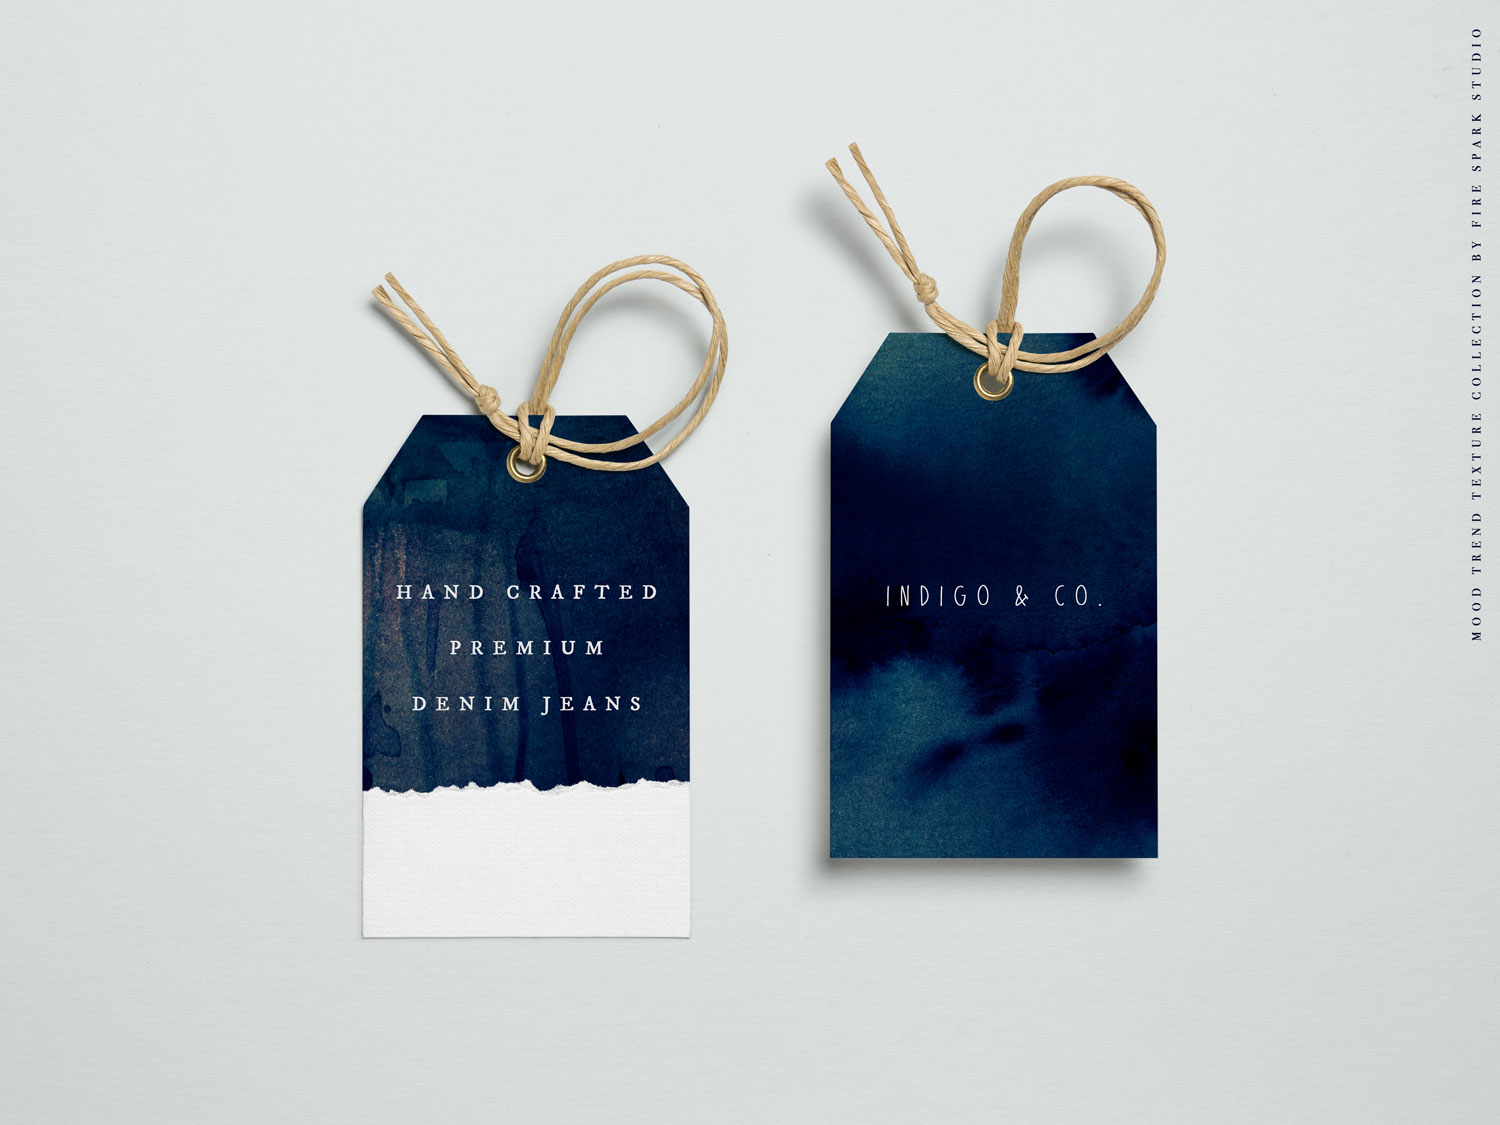 Label-Tag-PSD-MockUp-2.jpg